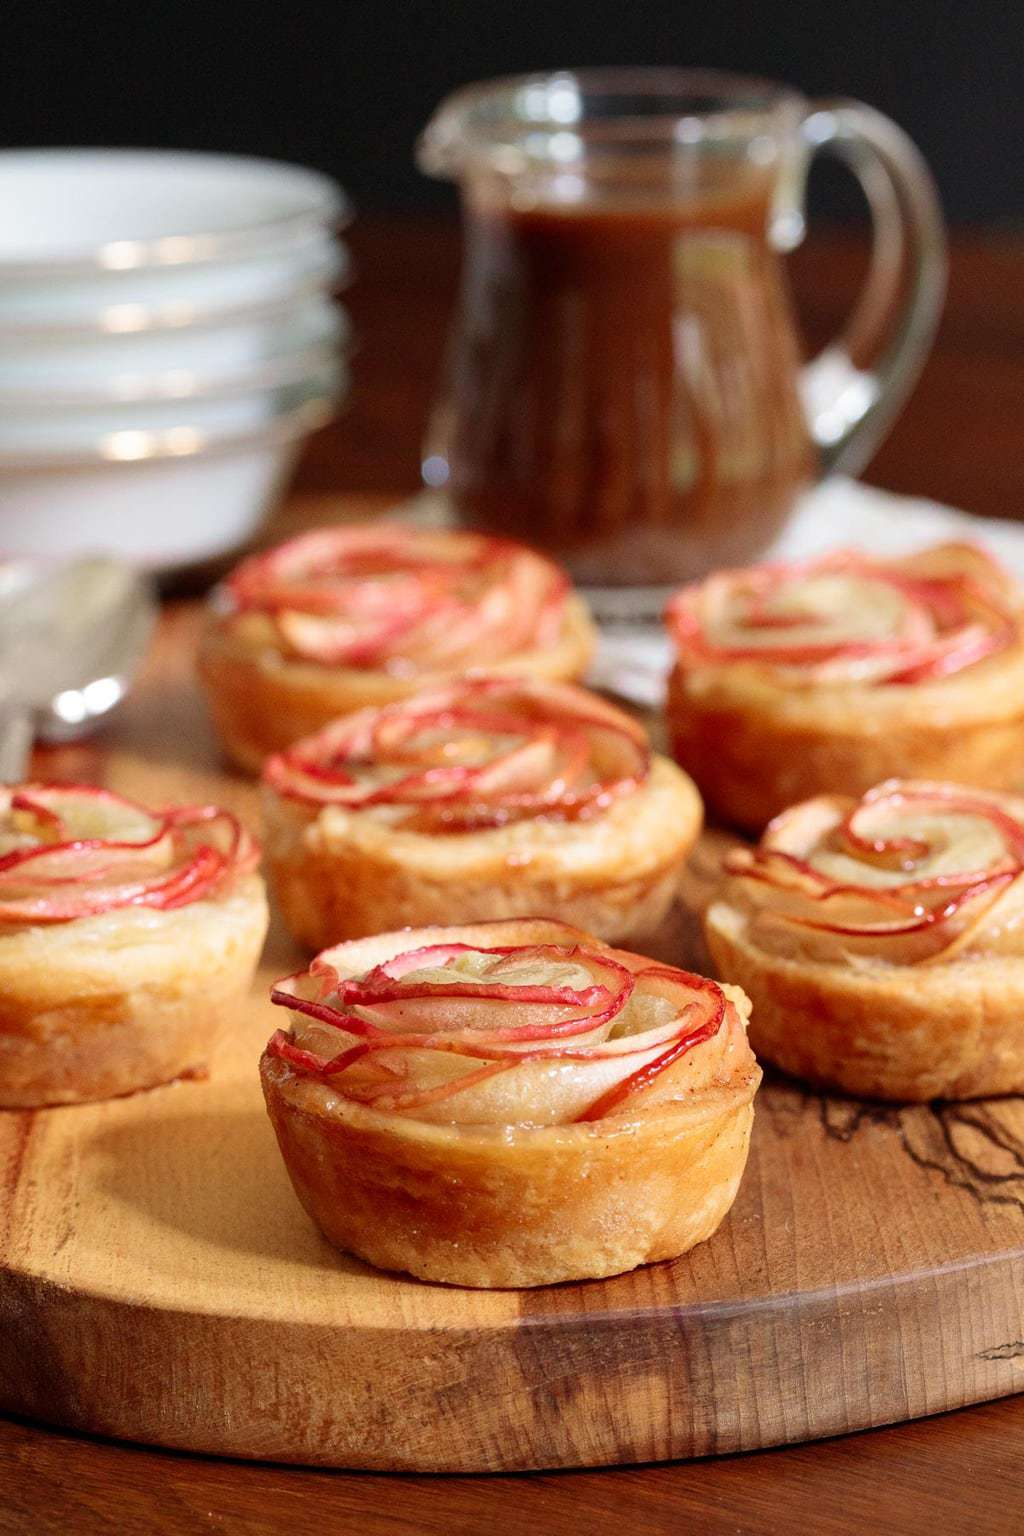 Overall photo of a batch of Glazed Puff Pastry Apple Roses on a wood presentation board with a small pitcher of salted apple caramel sauce.